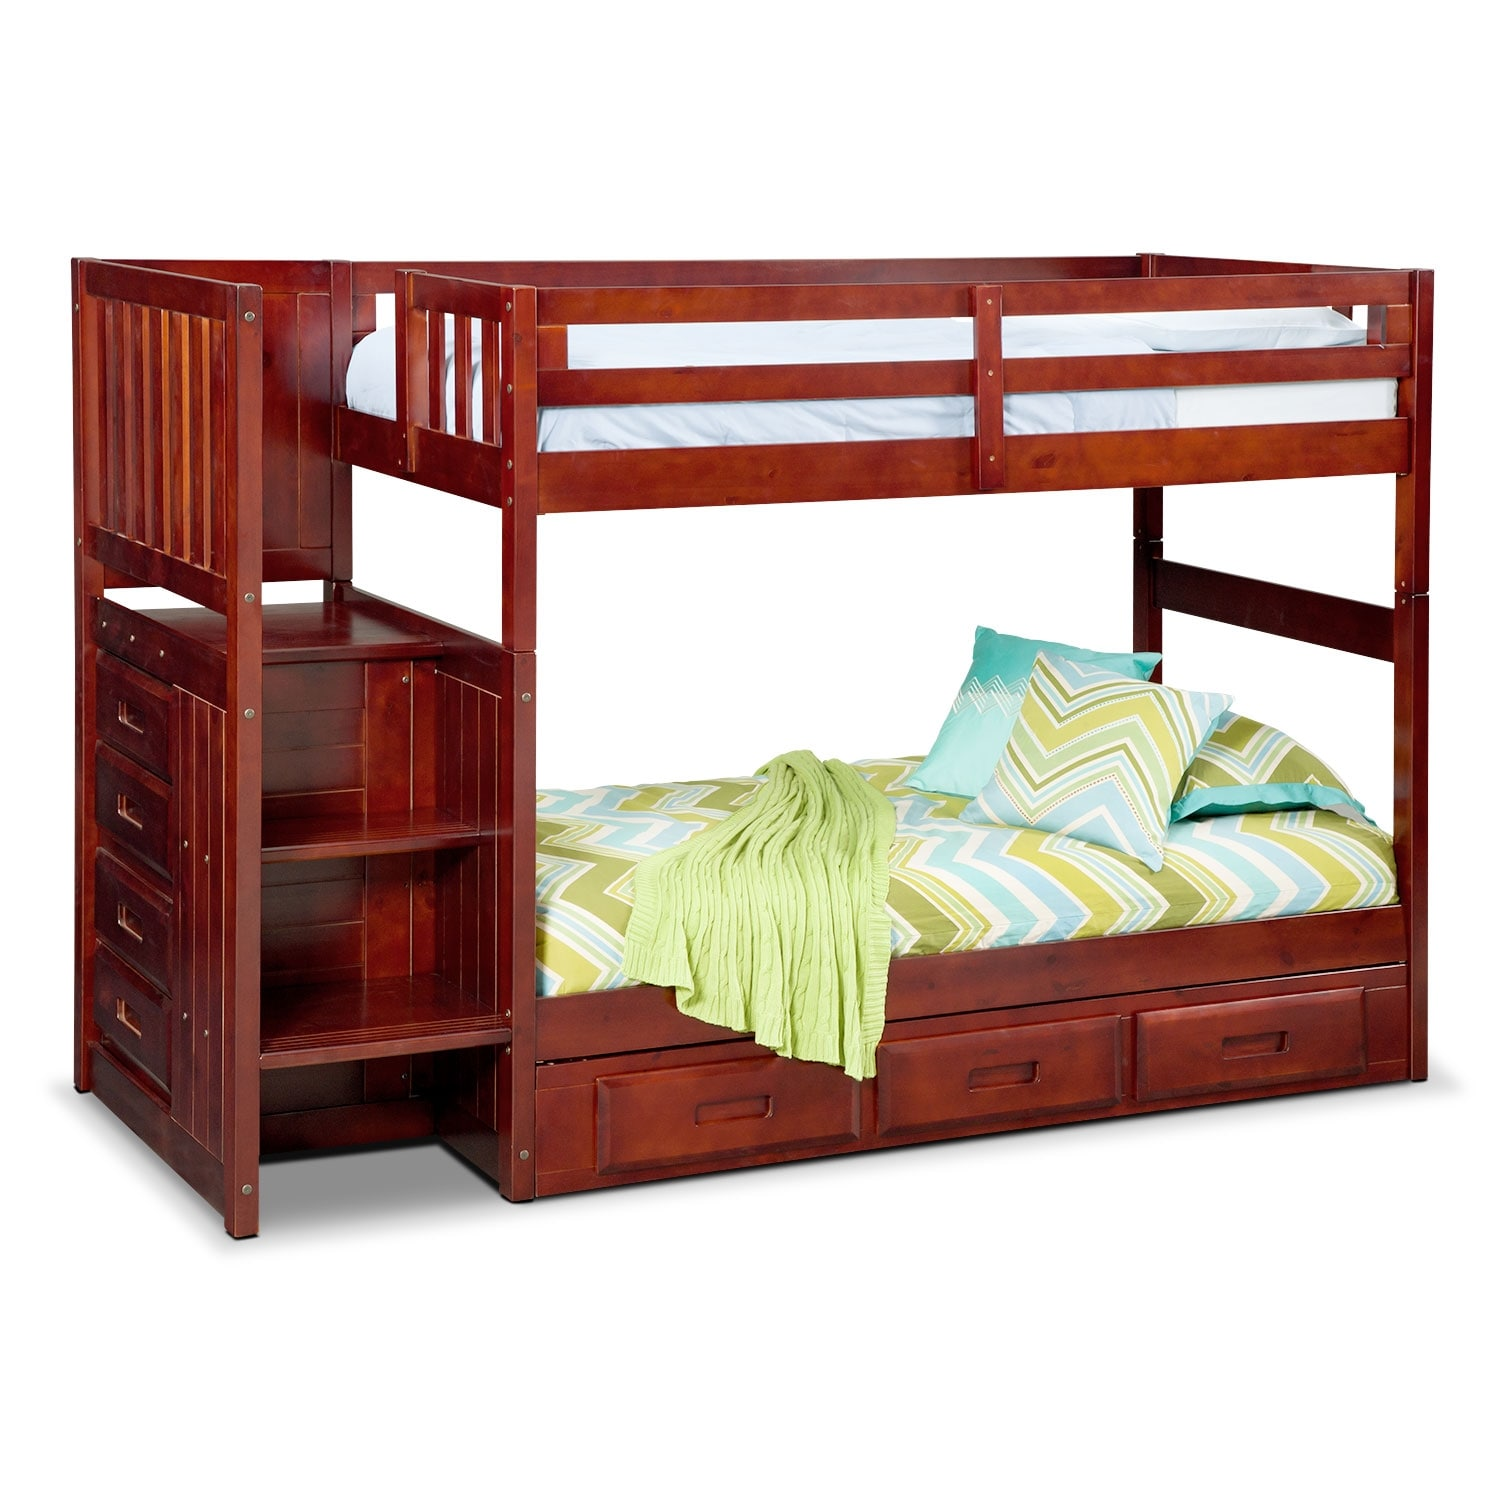 Ranger twin over twin bunk bed with storage stairs underbed drawers merlot american - Kids twin beds with storage drawers ...